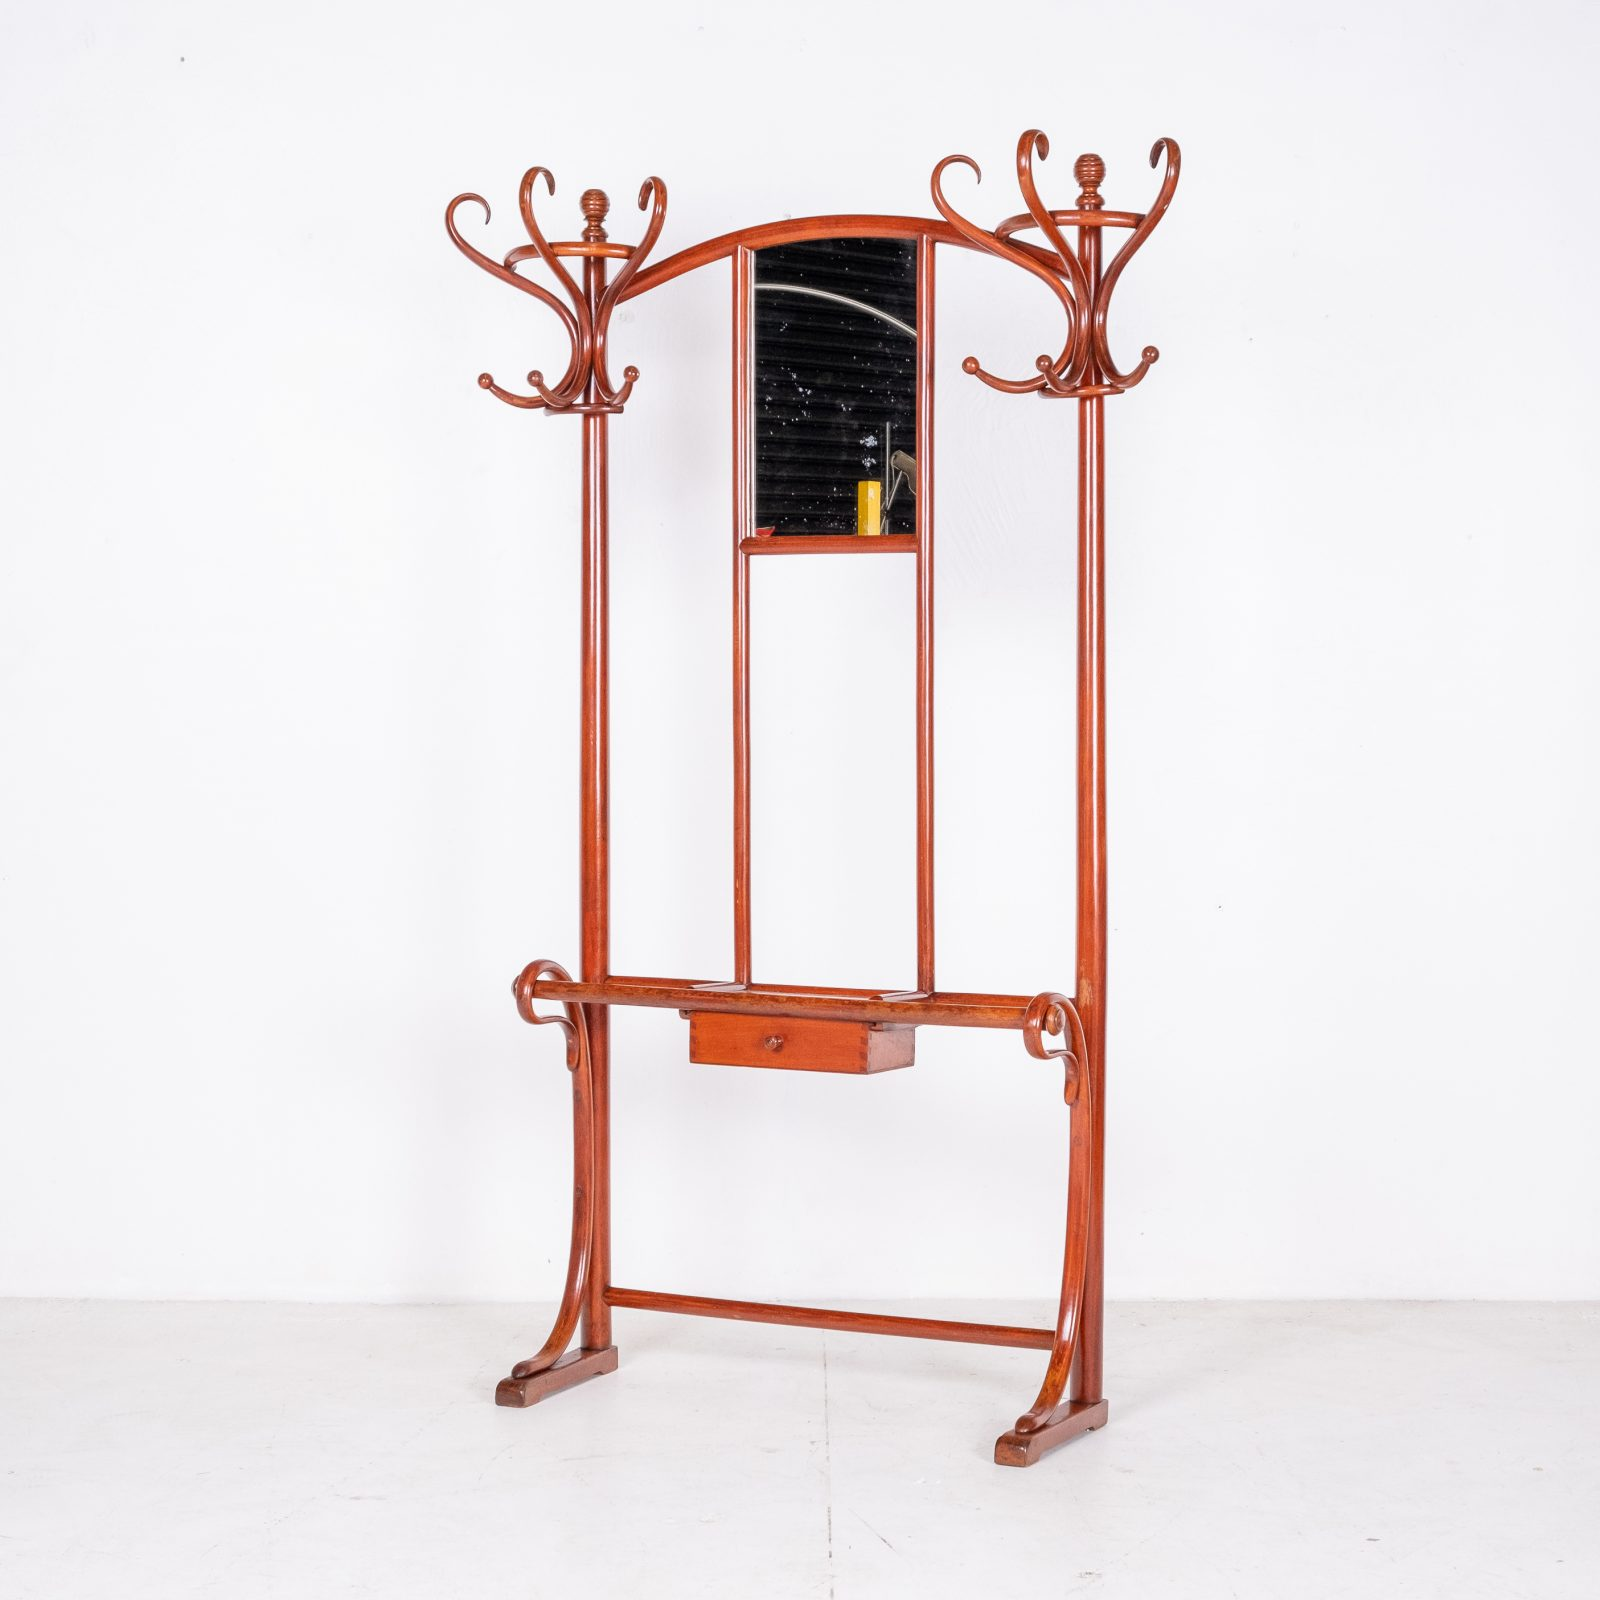 Model No. 4 Coat Stand By Michael Thonet For Thonet, Vienna, 1910 Oh